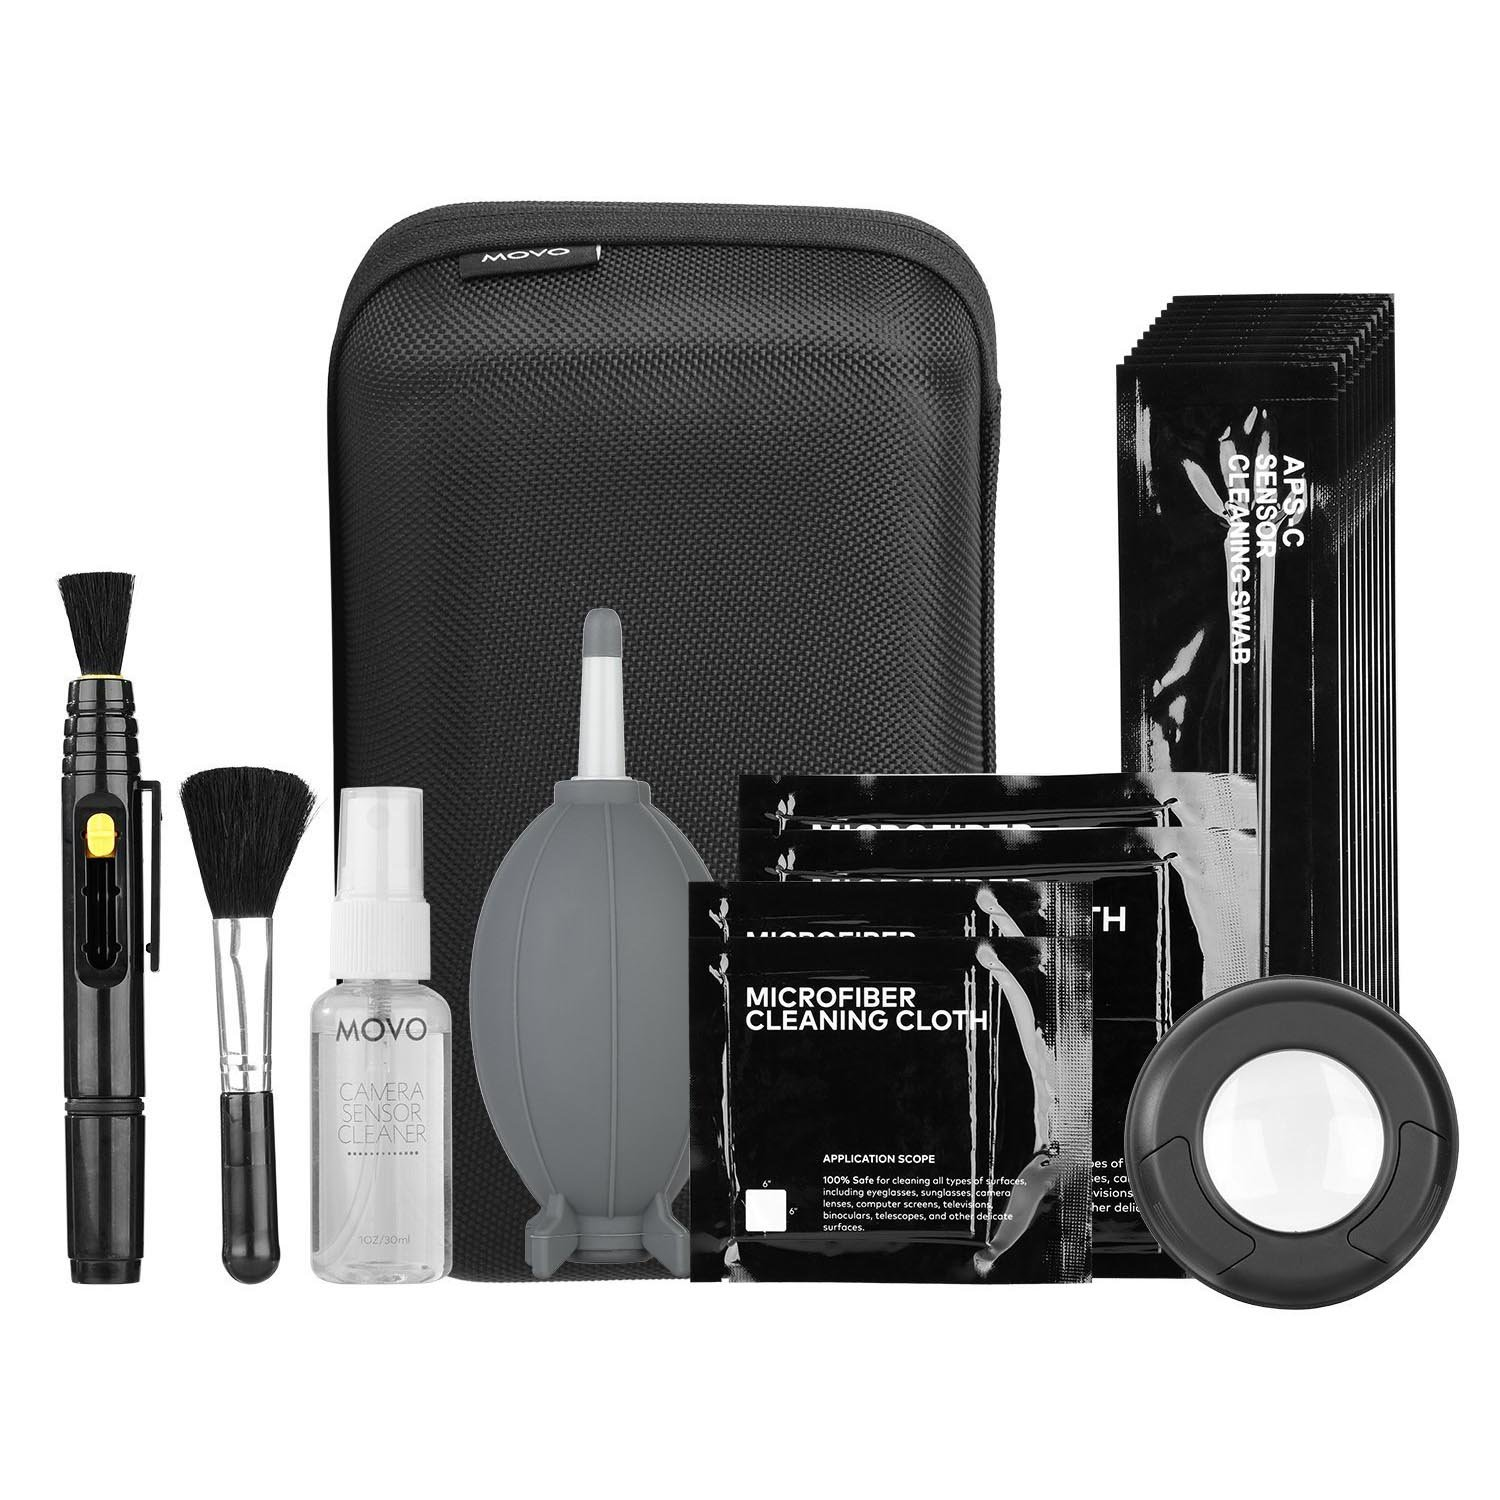 Movo Deluxe Essentials DSLR Camera Cleaning Kit